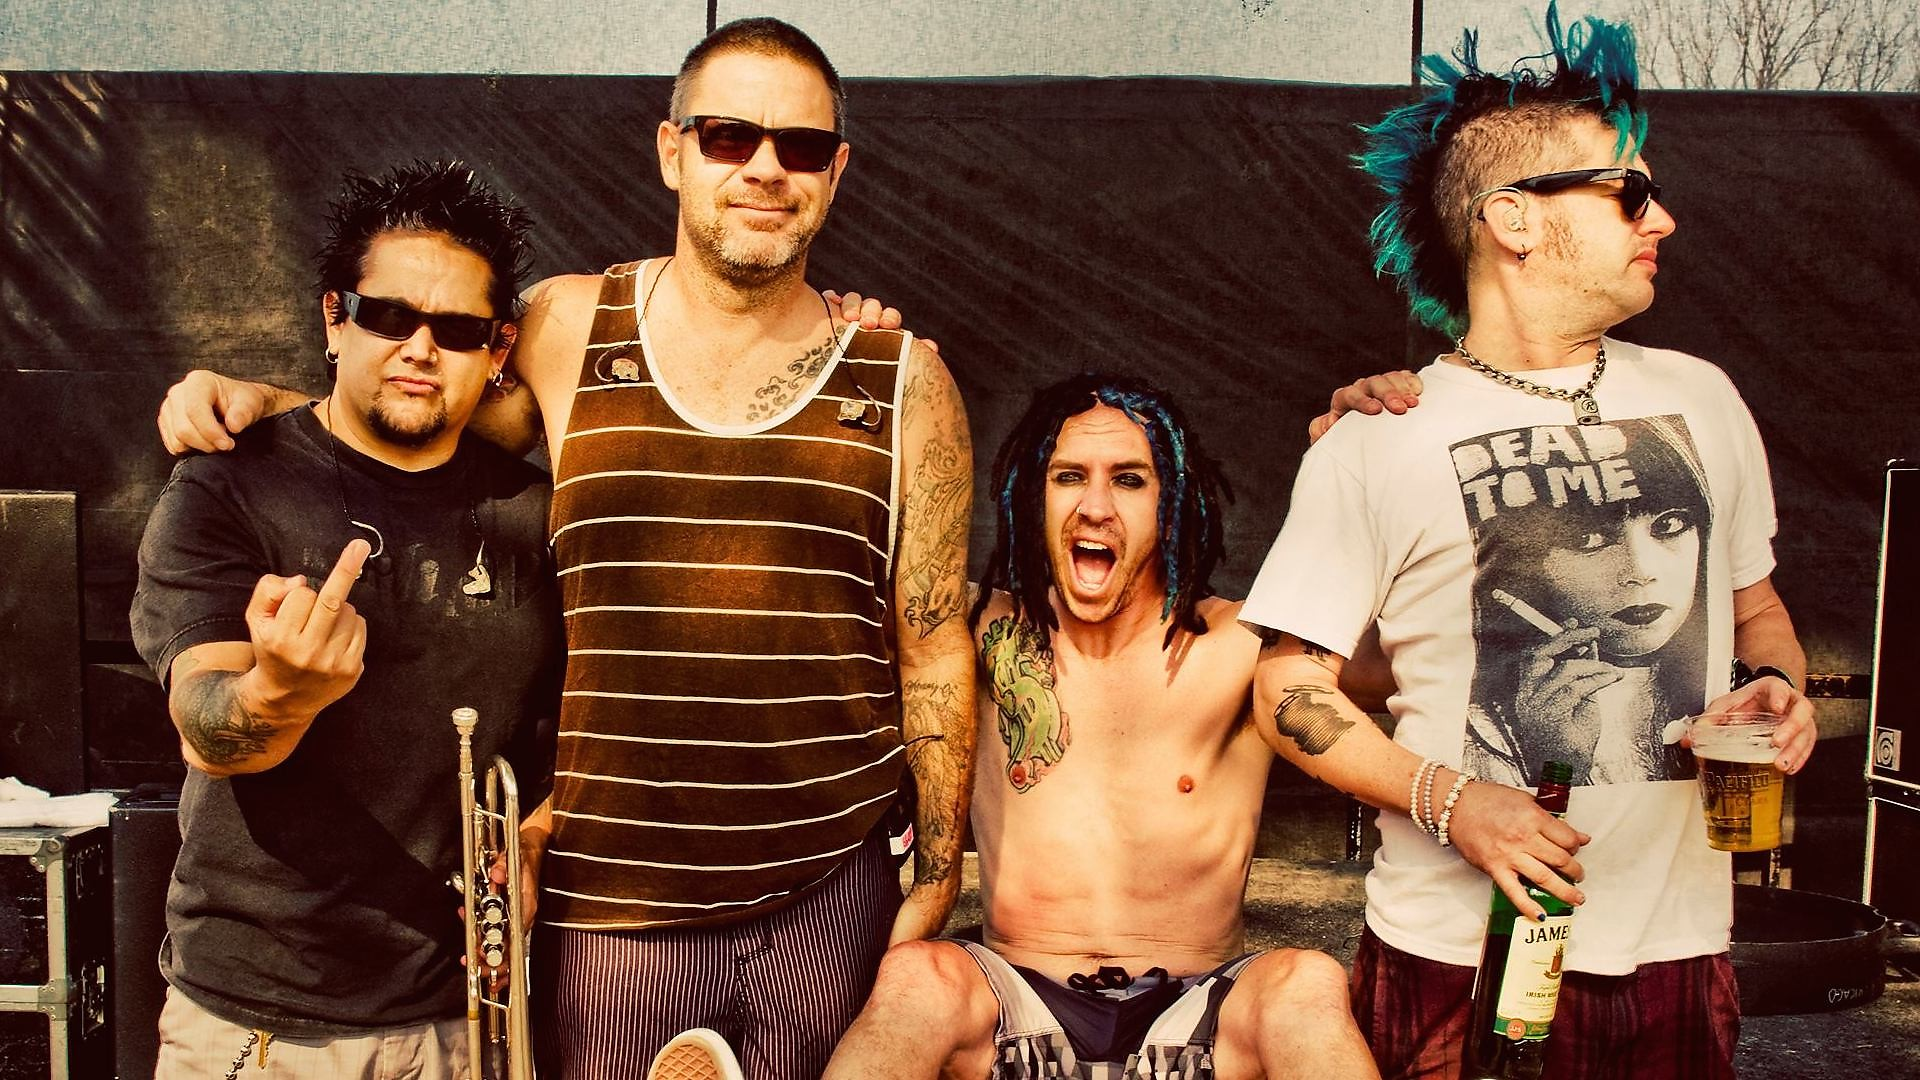 35 Years of NOFX: All of Their Albums Ranked from Worst to